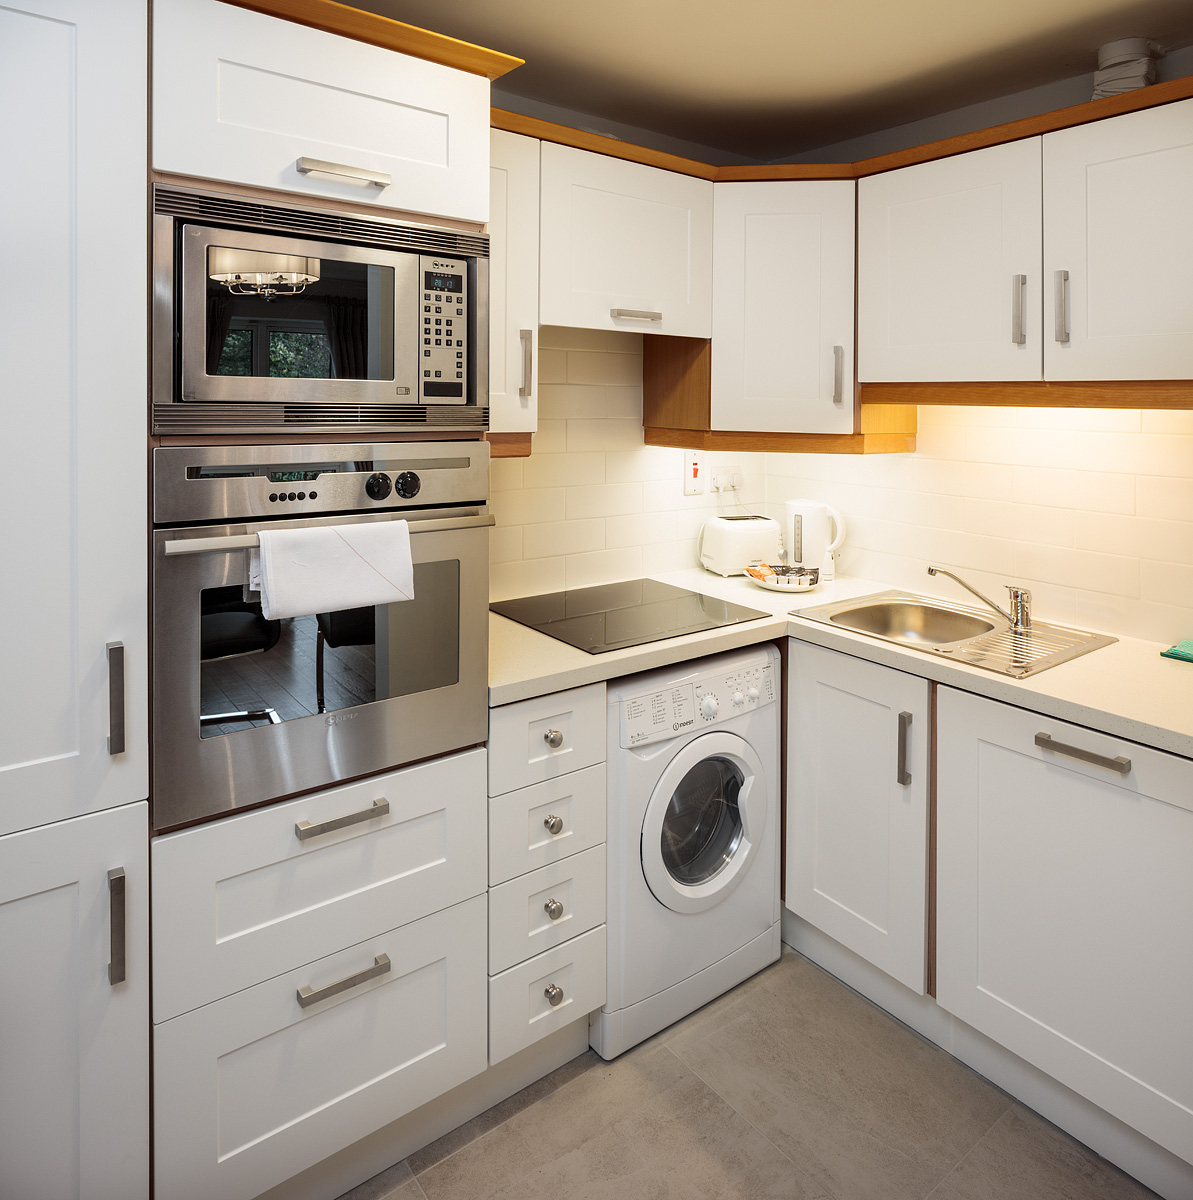 Kitchen at Baggot Rath House Apartments, Ballsbridge, Dublin - Citybase Apartments